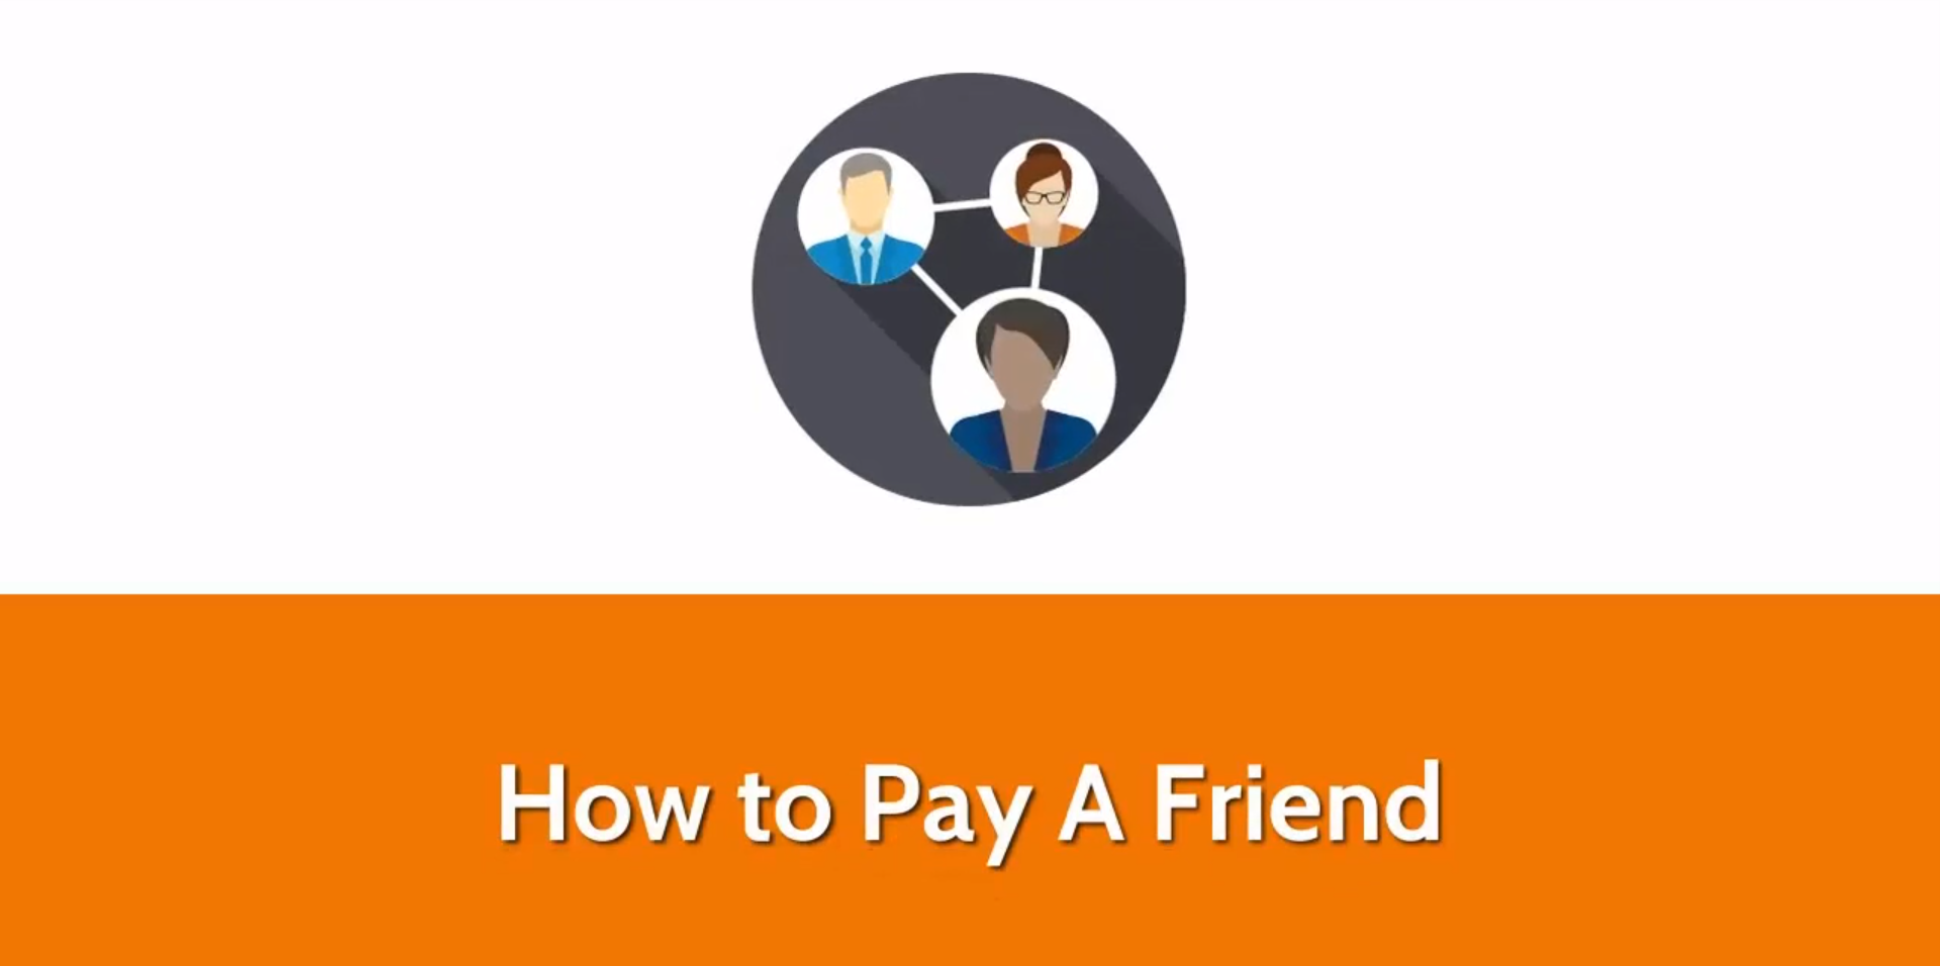 Pay a Friend